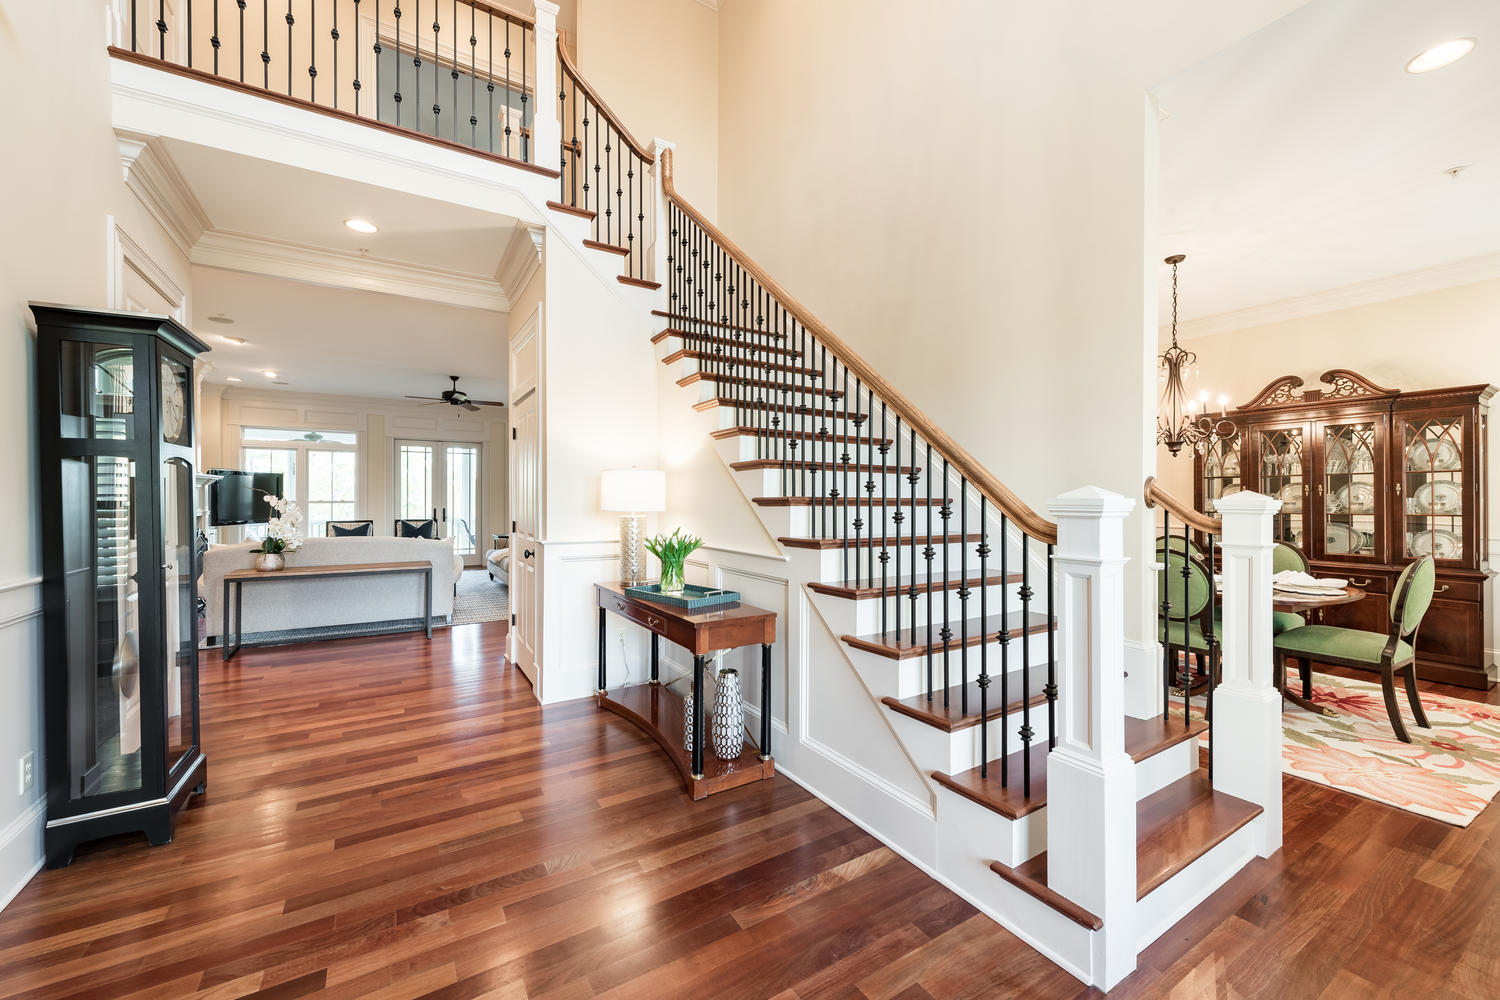 Rivertowne Country Club Homes For Sale - 2781 Parkers Landing, Mount Pleasant, SC - 2